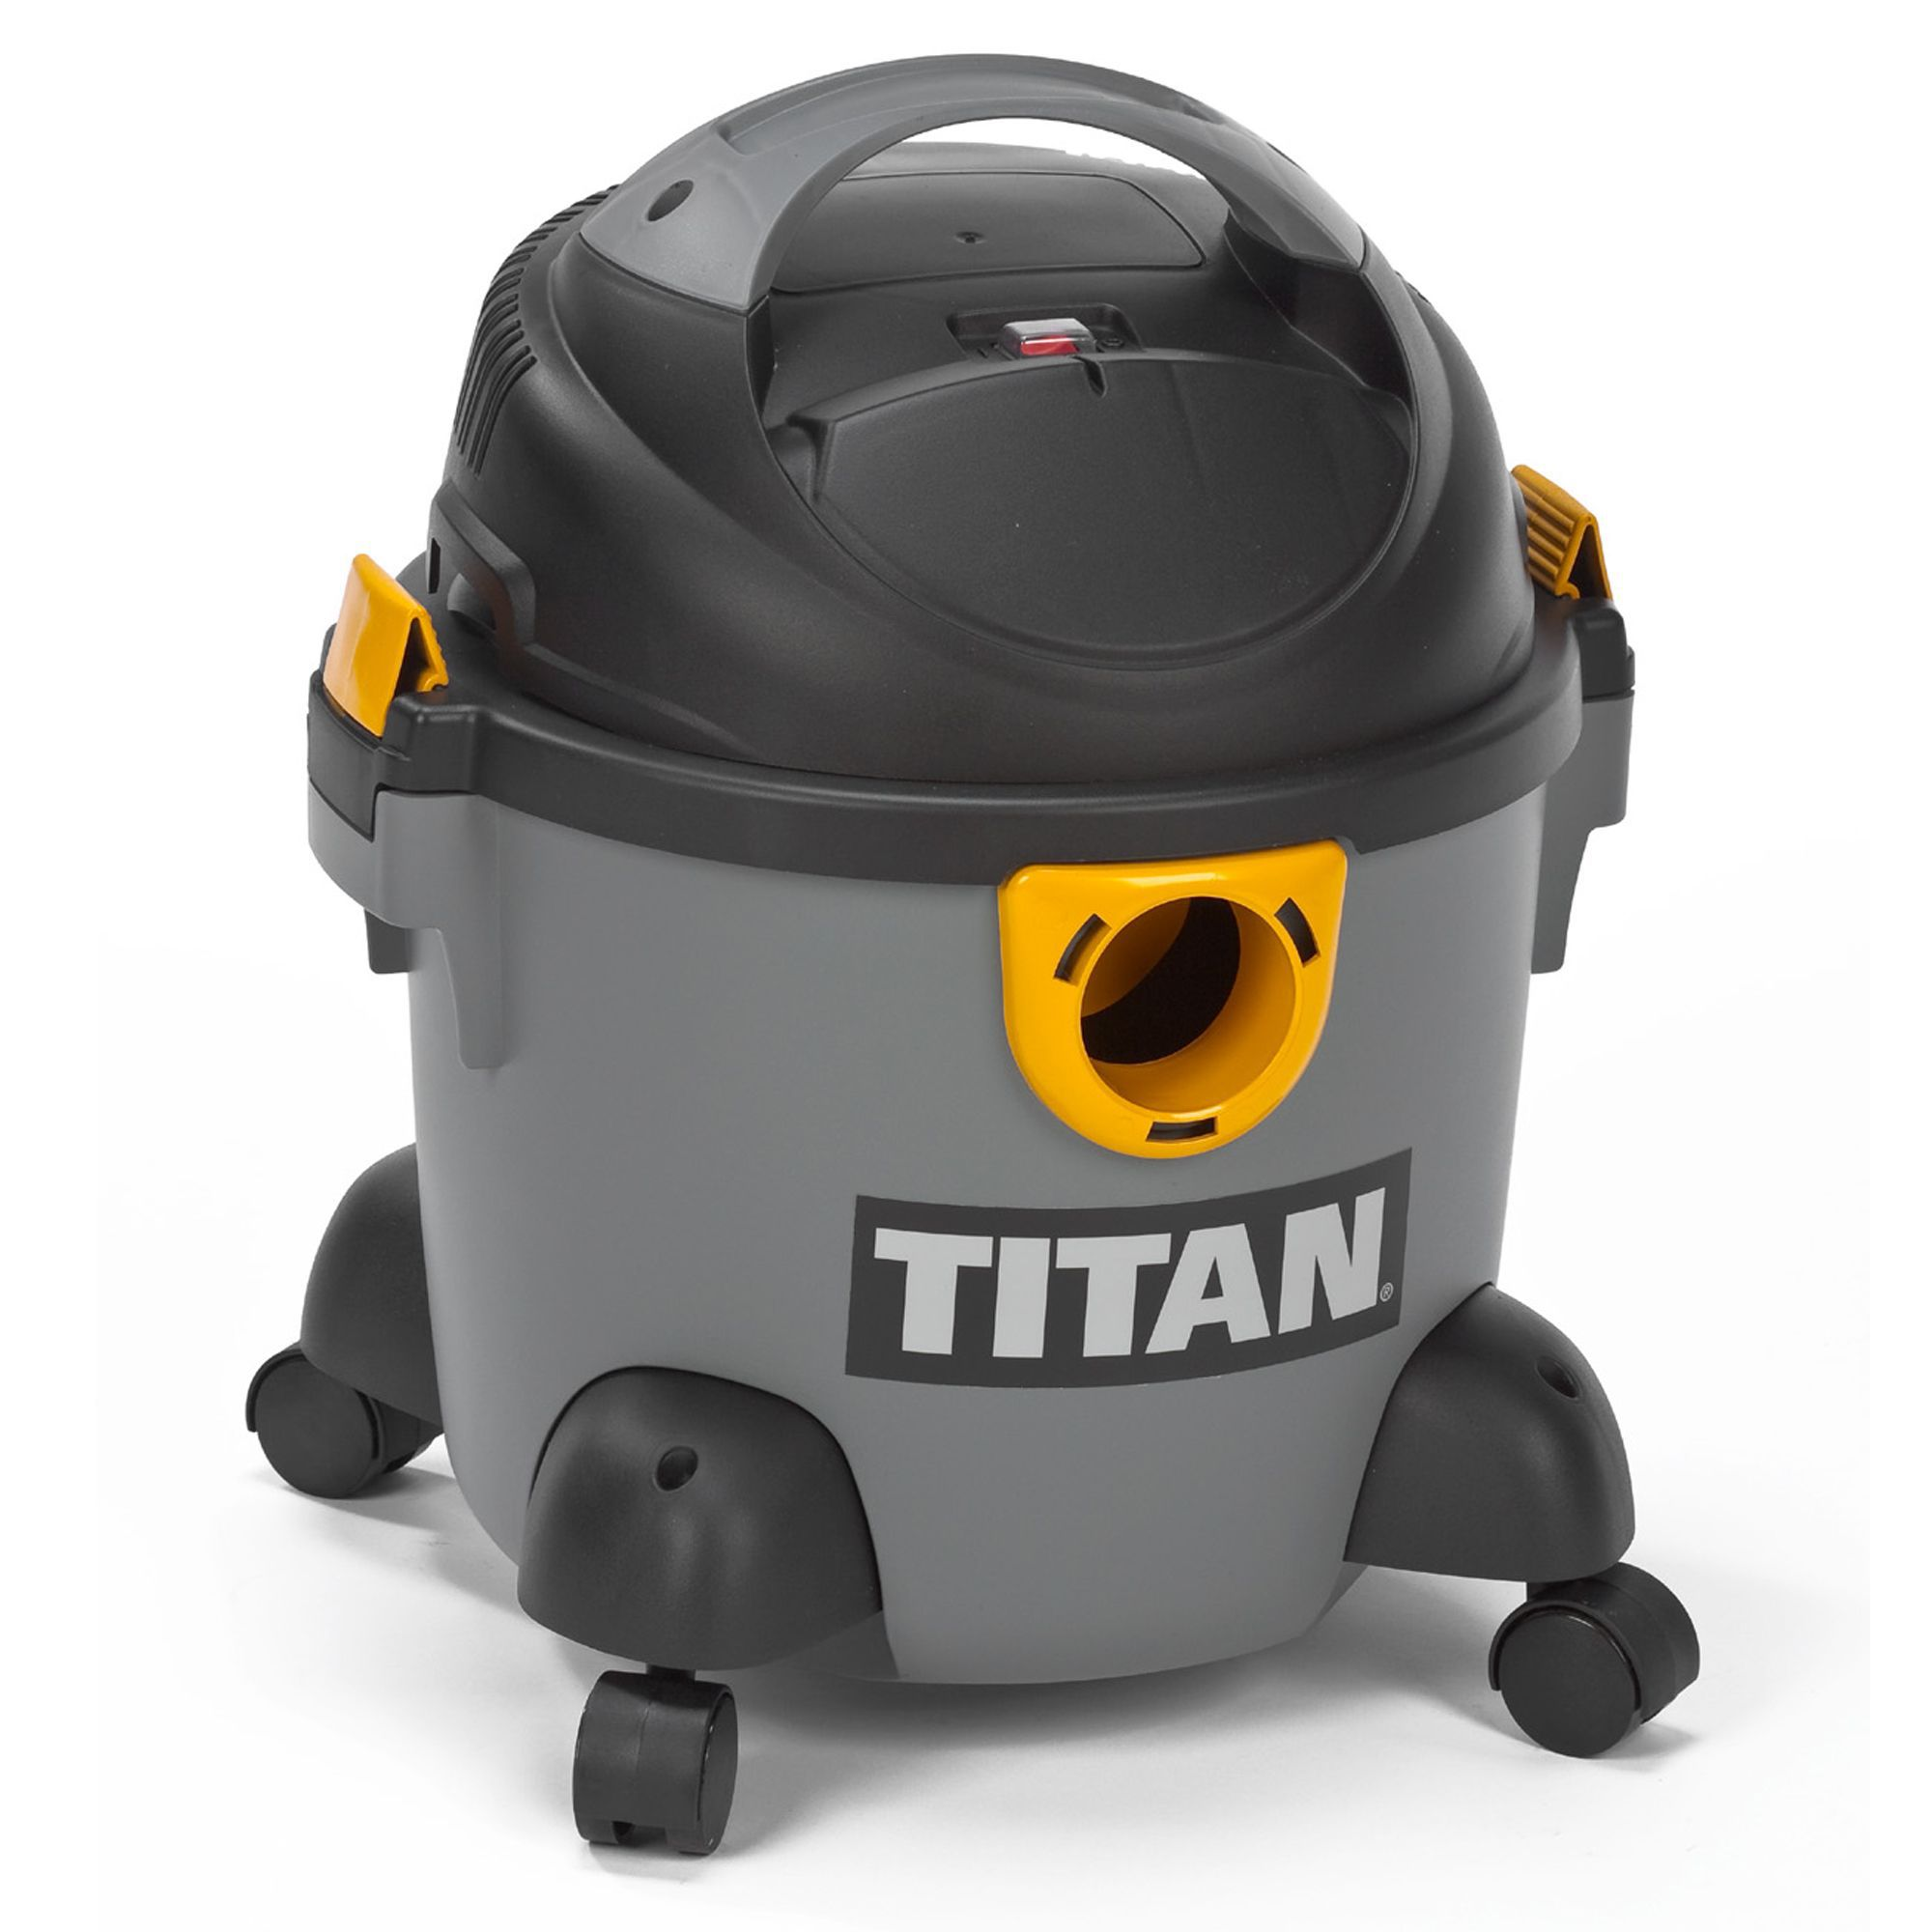 Titan Corded 16l Bagged Wet Amp Dry Vacuum Cleaner Ttb350vac